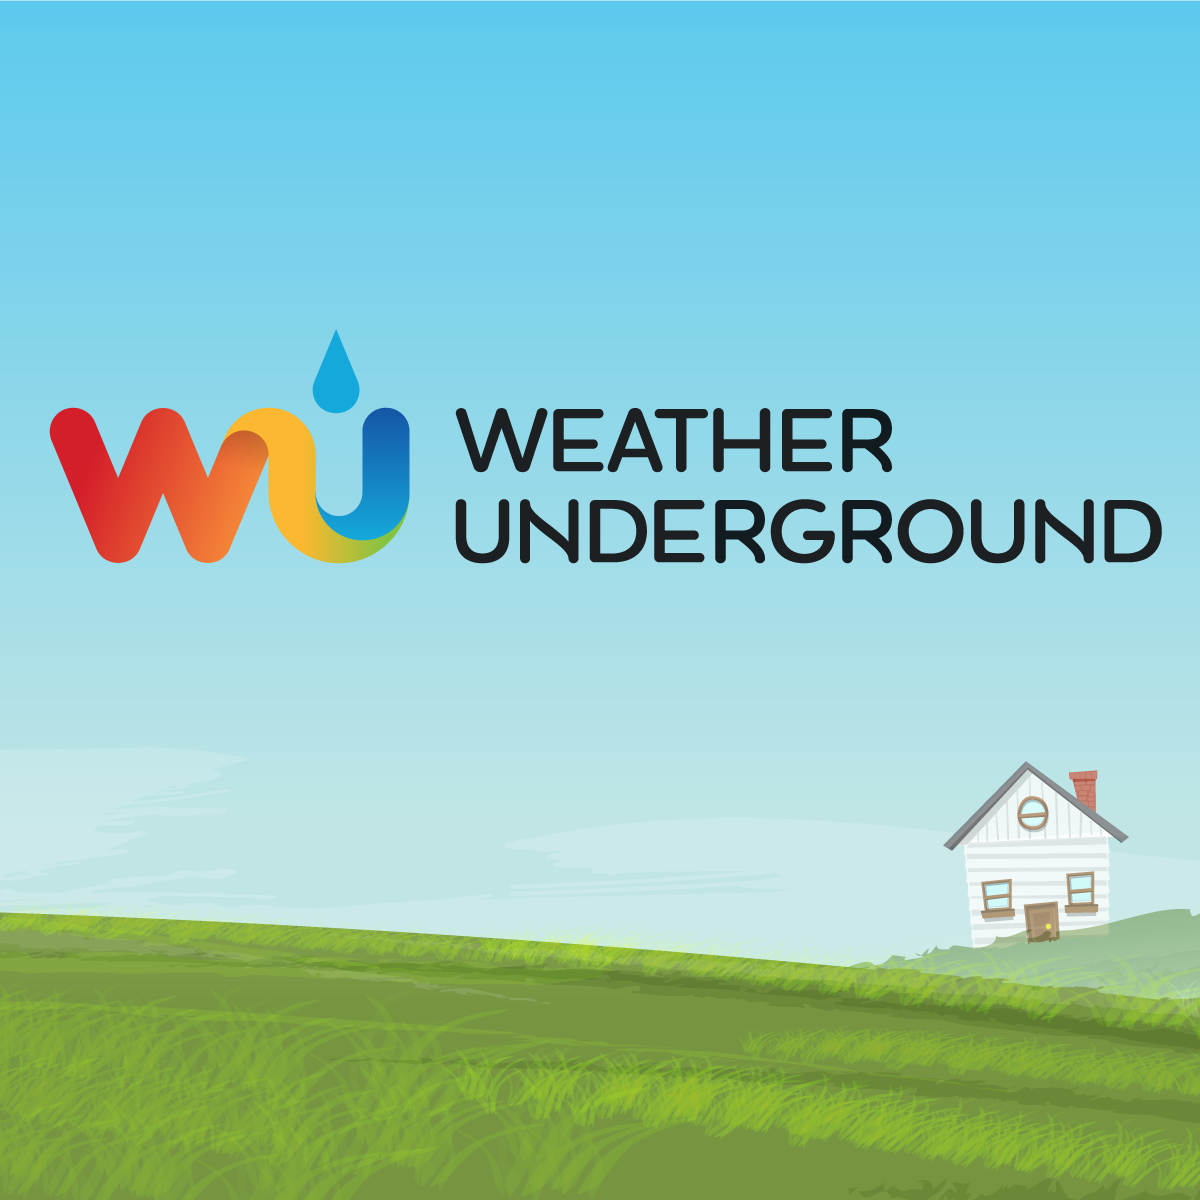 Weather underground cincinnati oh